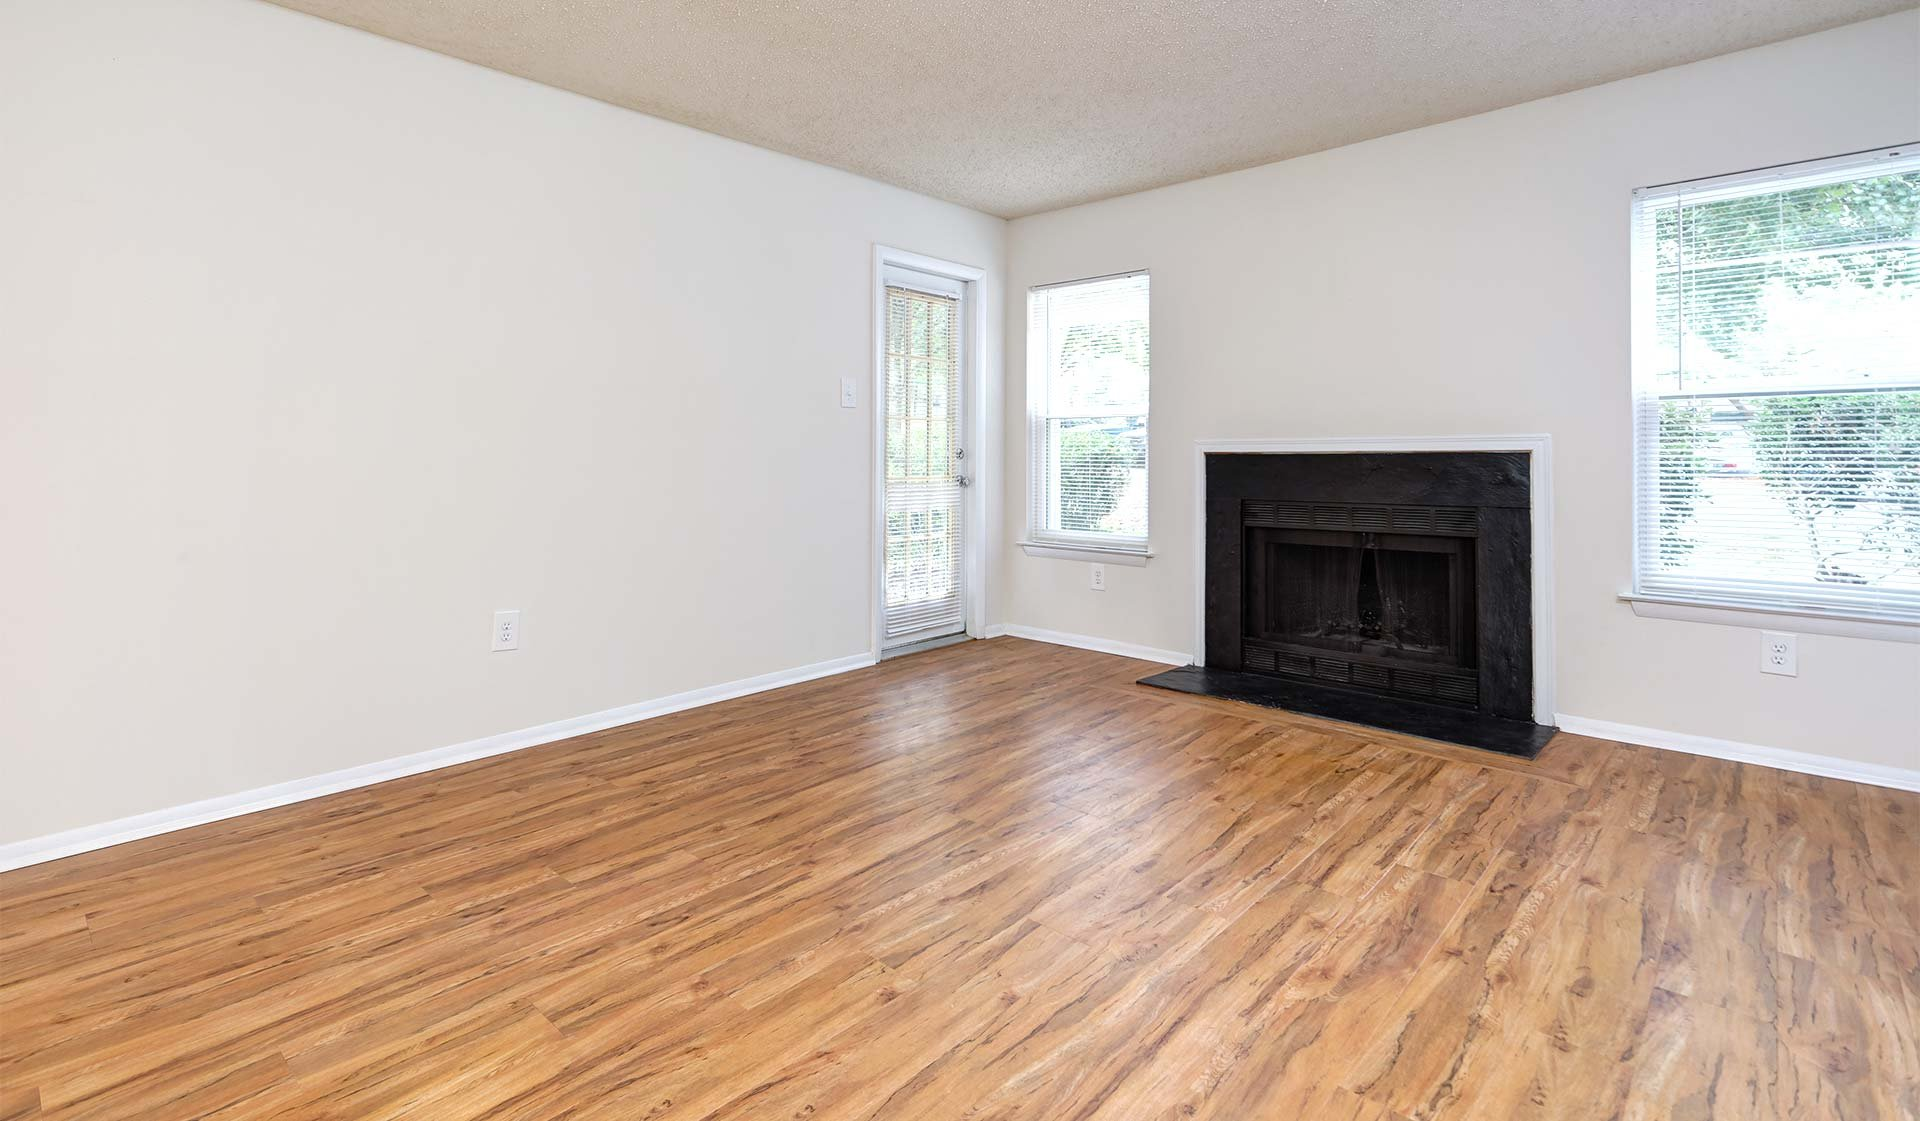 Burke Shire Commons Apartments - Empty Room with hardwood floors and black fireplace - Burke, Virginia